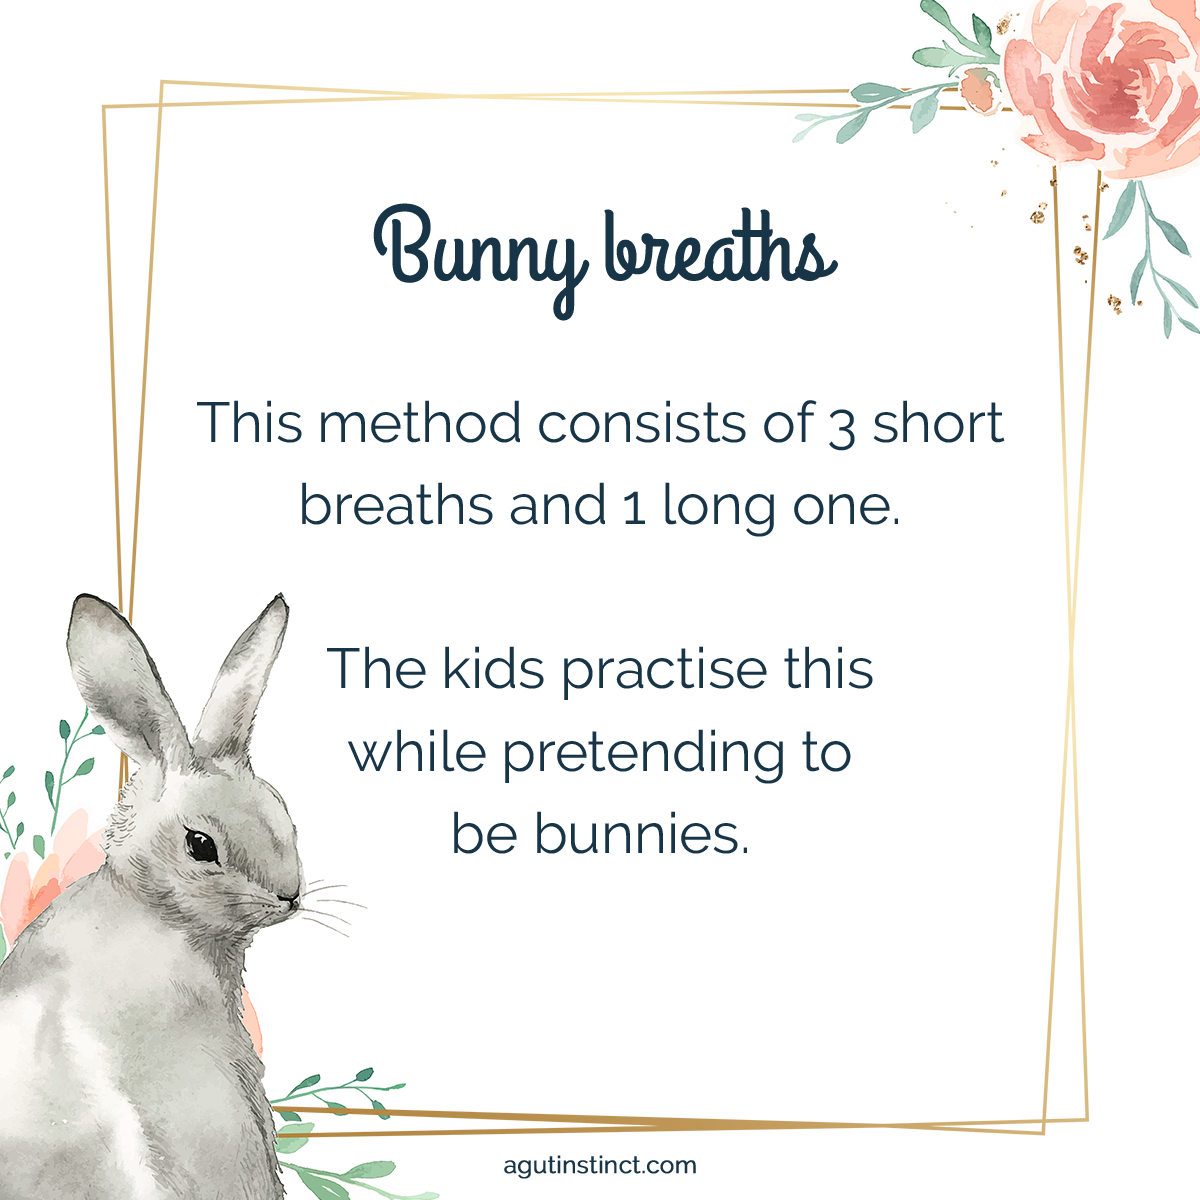 an illustration of a bunny in the bottom corner and the steps to perform the Bunny Breaths meditation for kids in the center of the image as a fun way to teach kids to breathe and calm their body and mind before bedtime